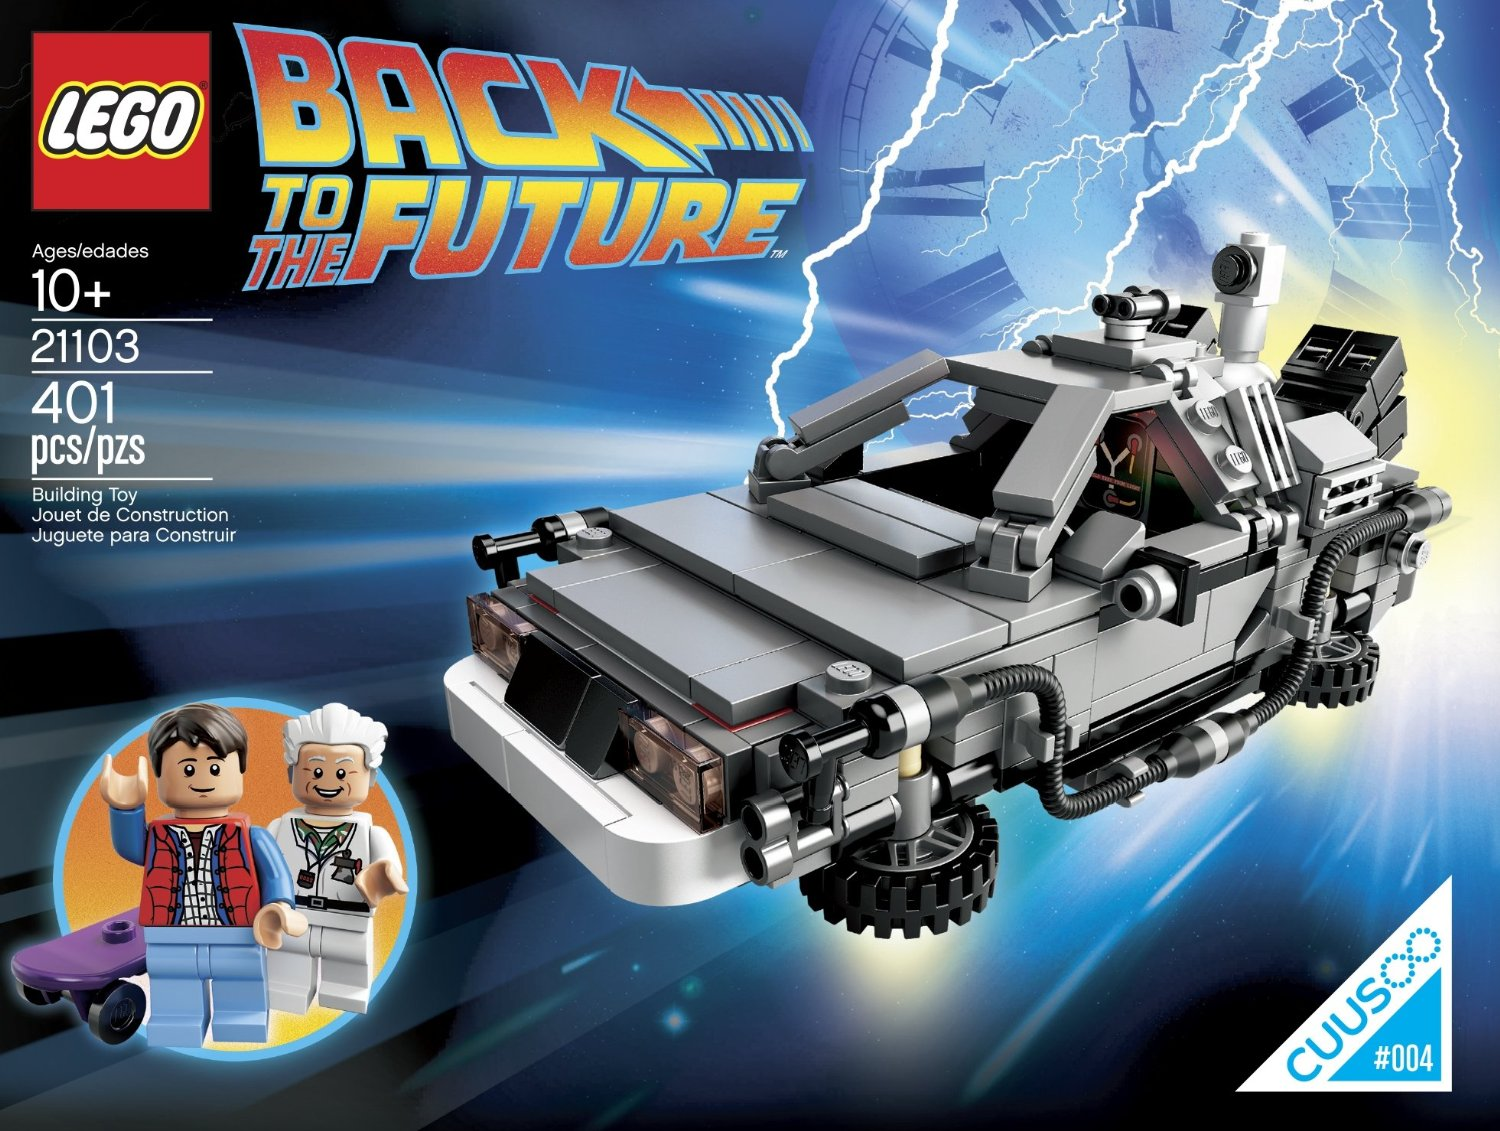 Back_to_the_future_delorean